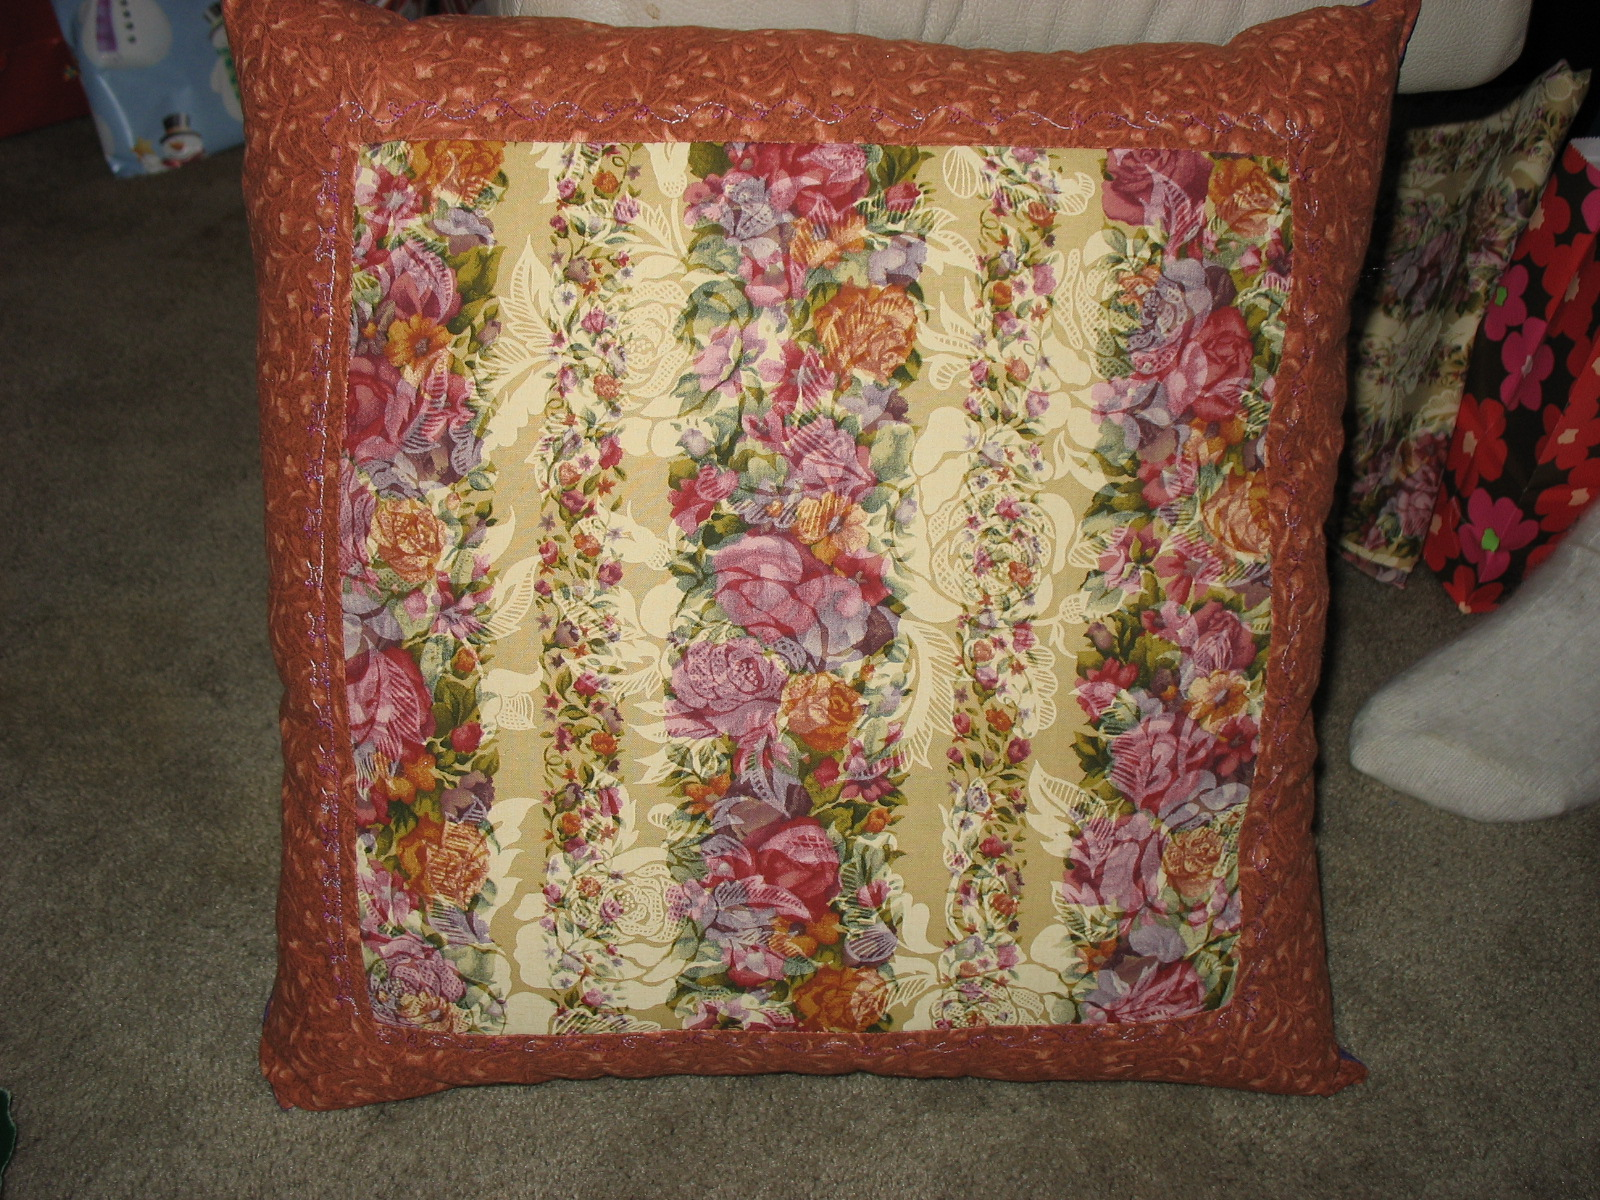 Threads of Fancy - Sewing in Alaska: Cathedral Window Pillow